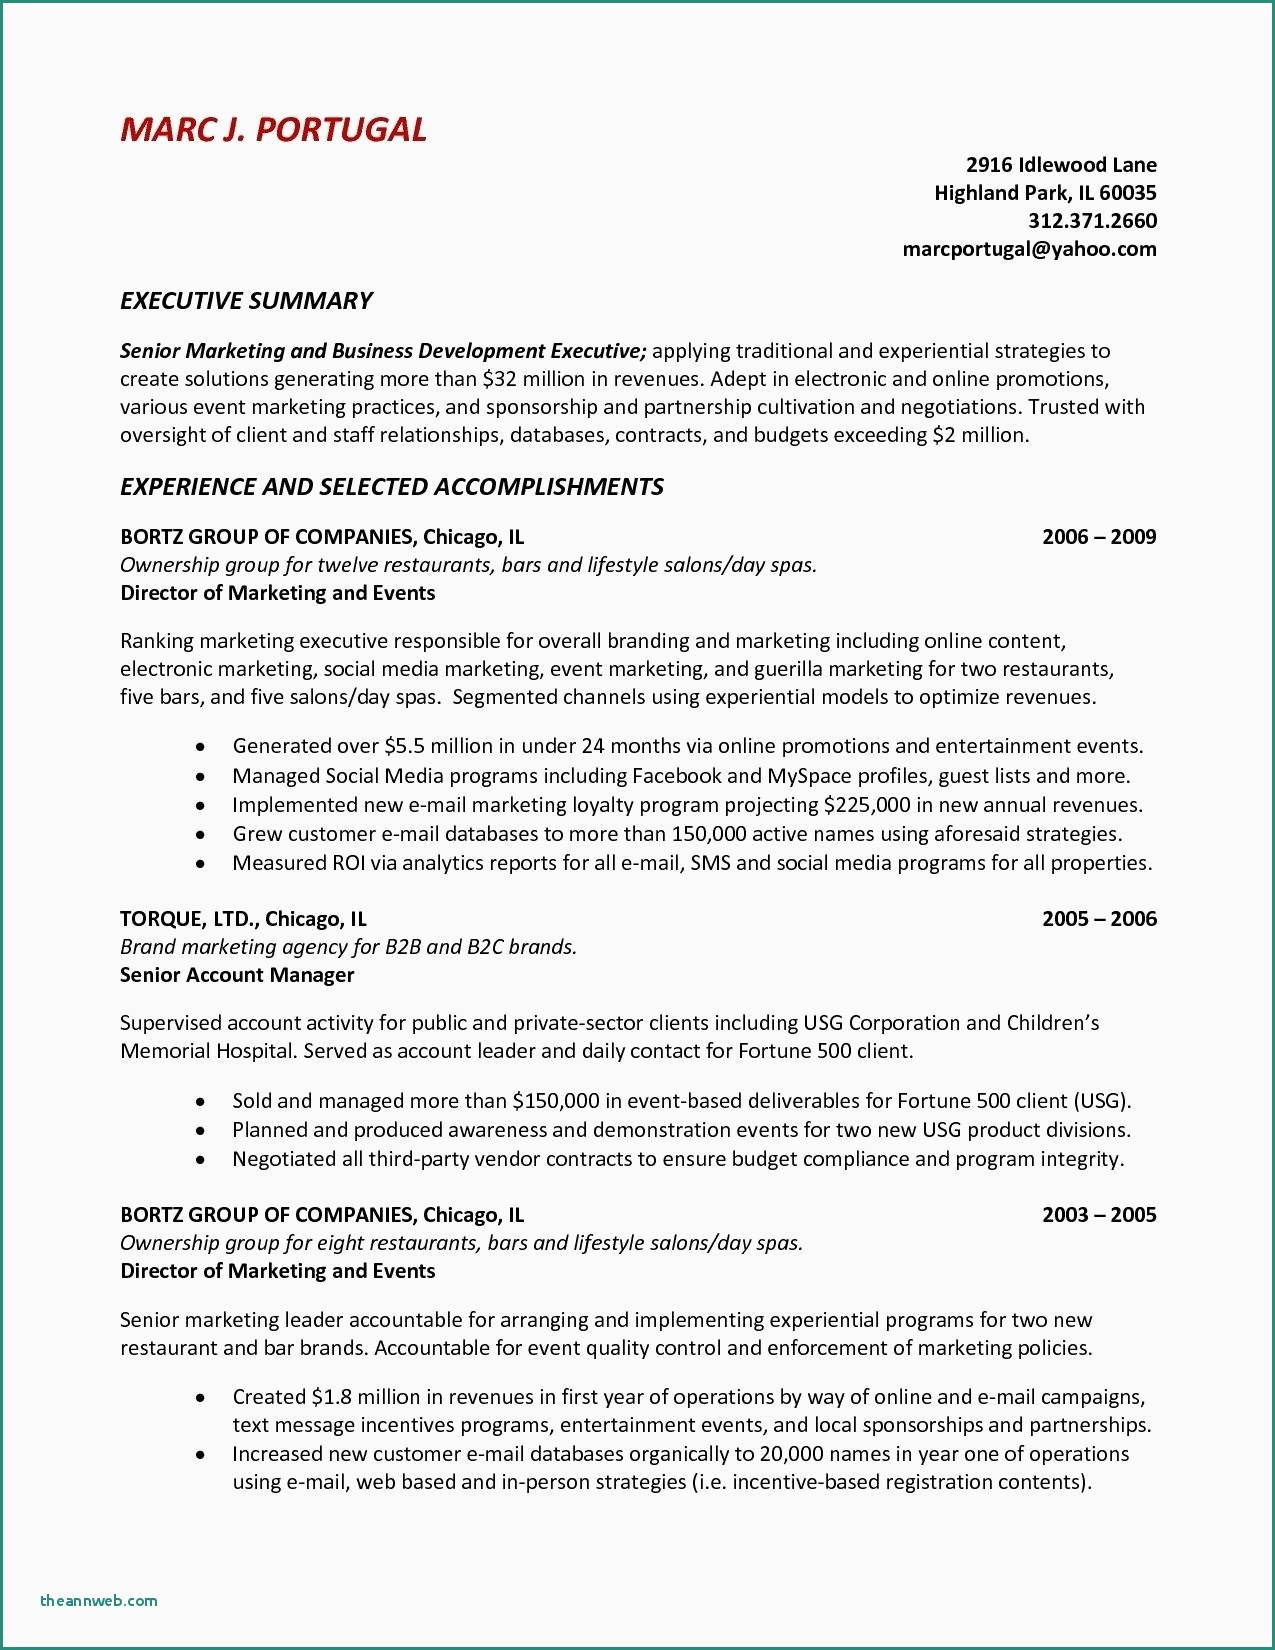 Good Objective For Resume Job Objective For Resume General Objectives For Resume Awesome Good Objective Resume Of Job Objective For Resume good objective for resume wikiresume.com